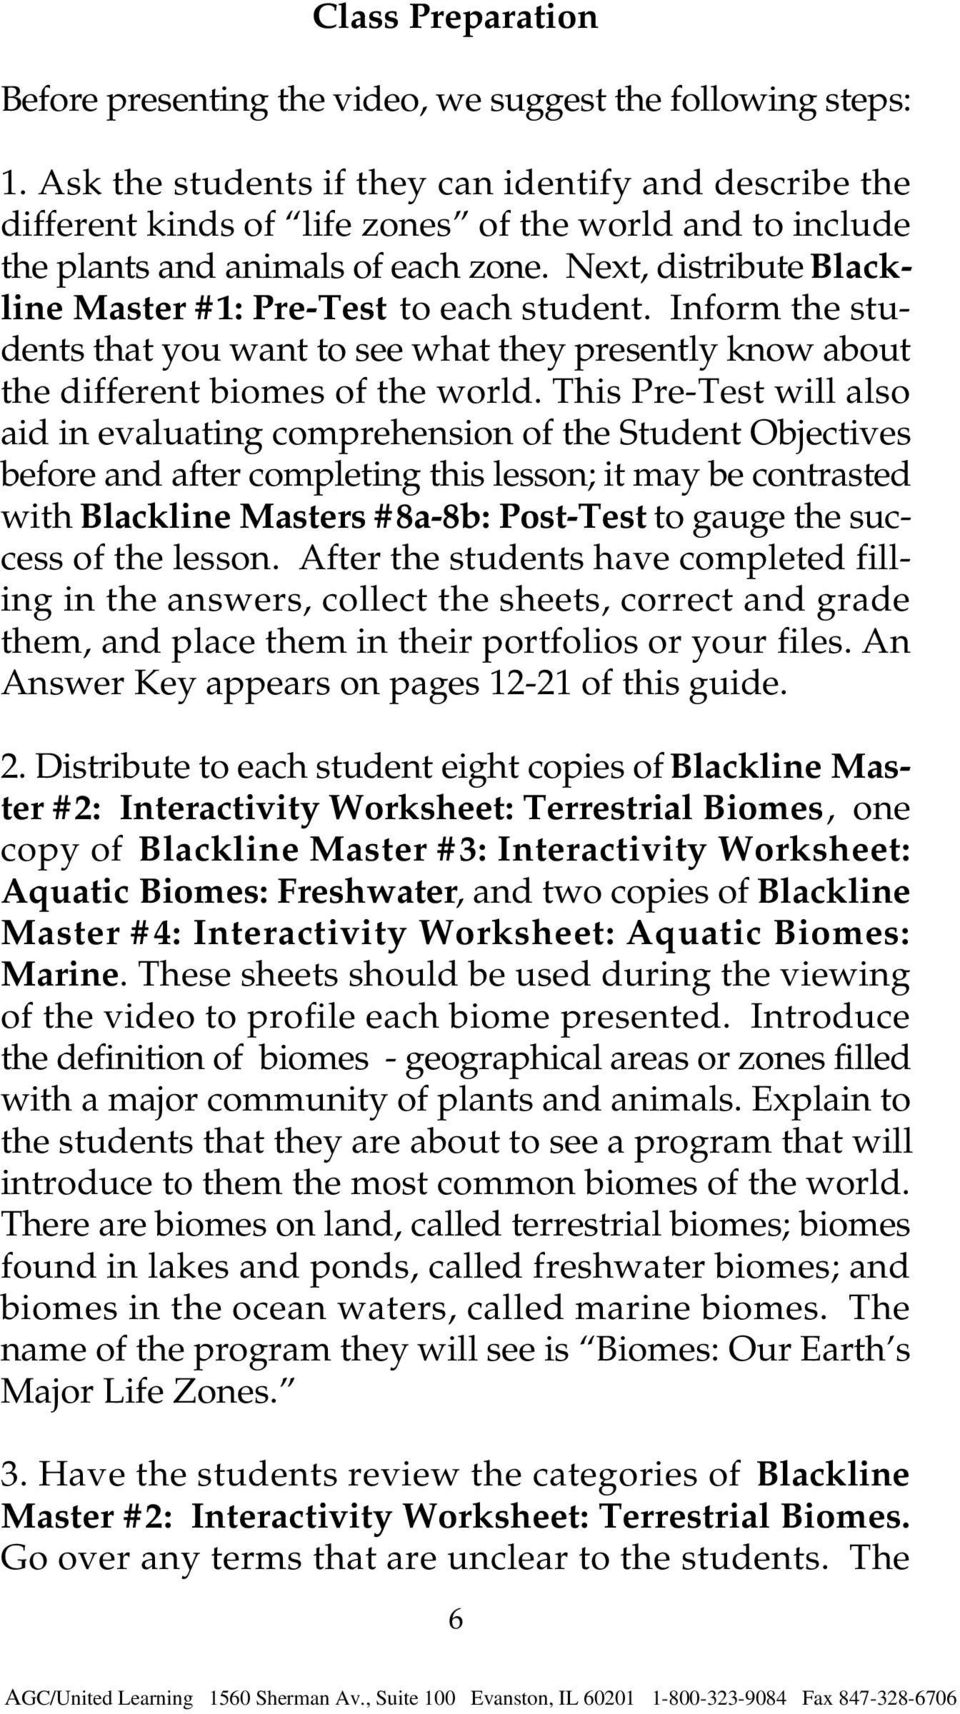 Next, distribute Blackline Master #1: Pre-Test to each student. Inform the students that you want to see what they presently know about the different biomes of the world.